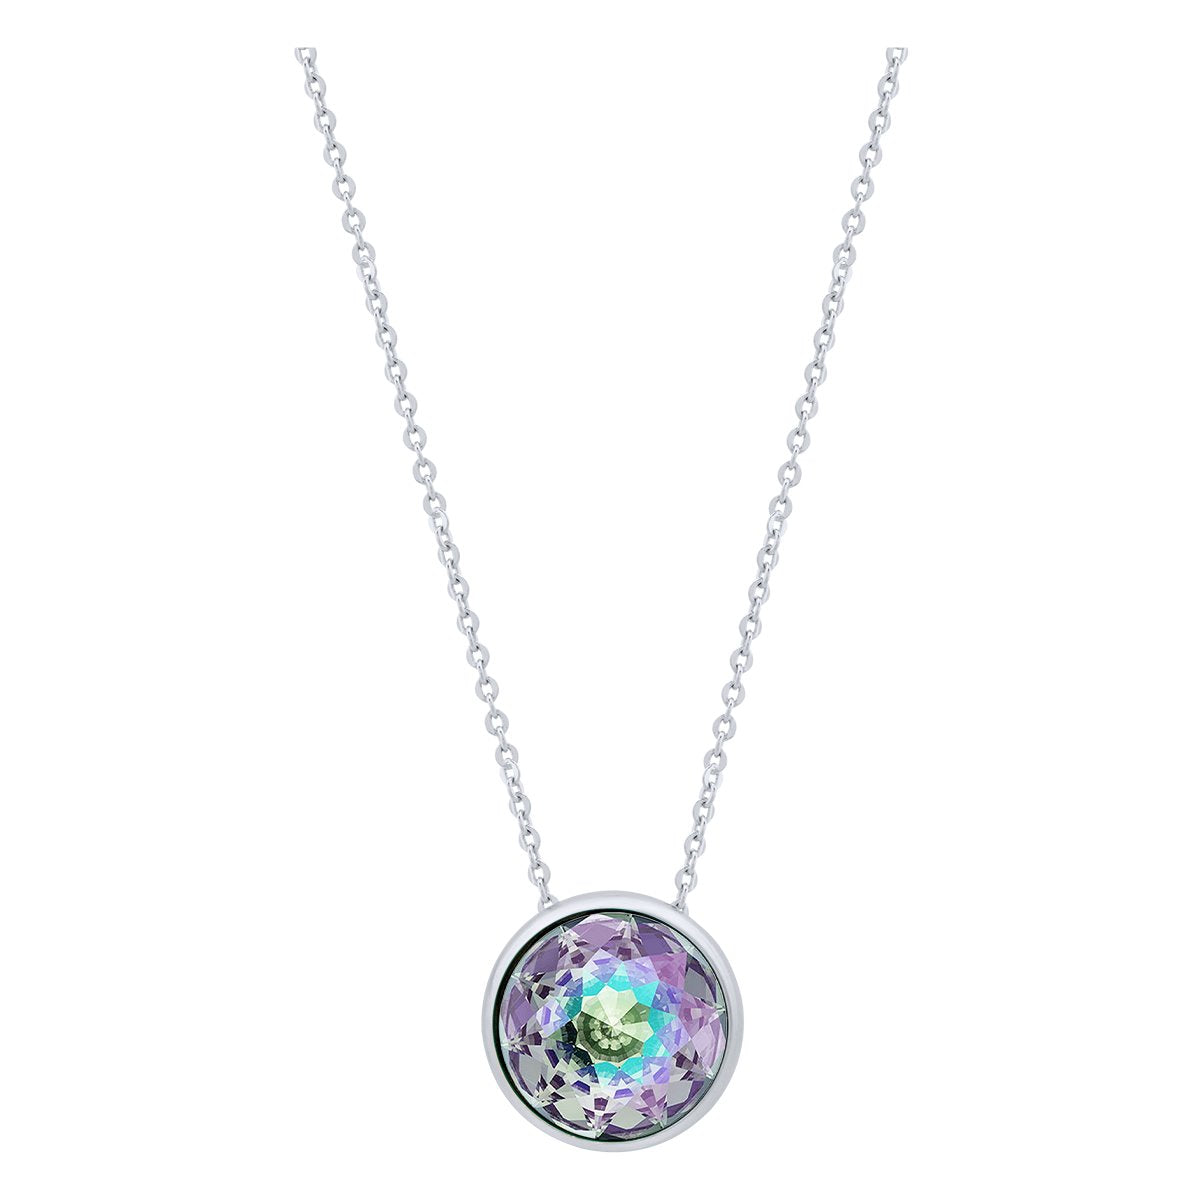 Elysees Necklace Silver Paradise Shine JOY OF SPARKLE FOREVER CRYSTALS